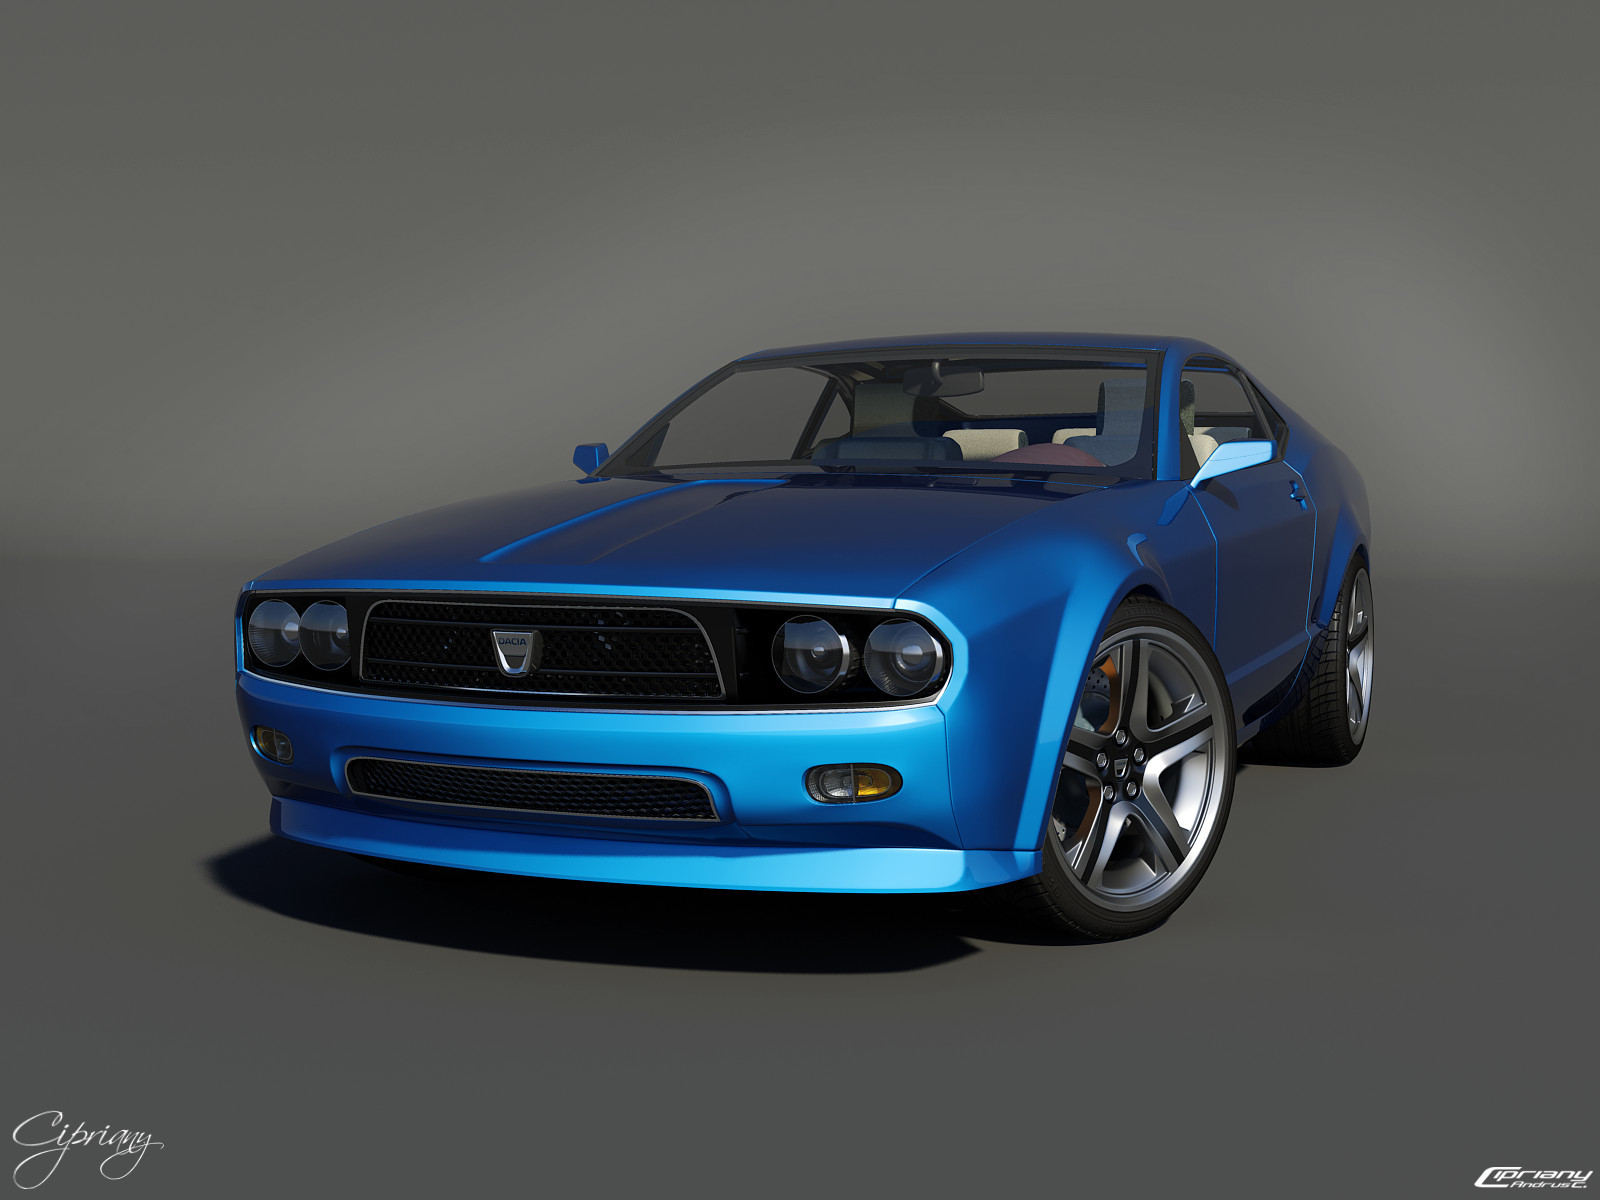 cars vehicles Dacia mc HD Wallpaper